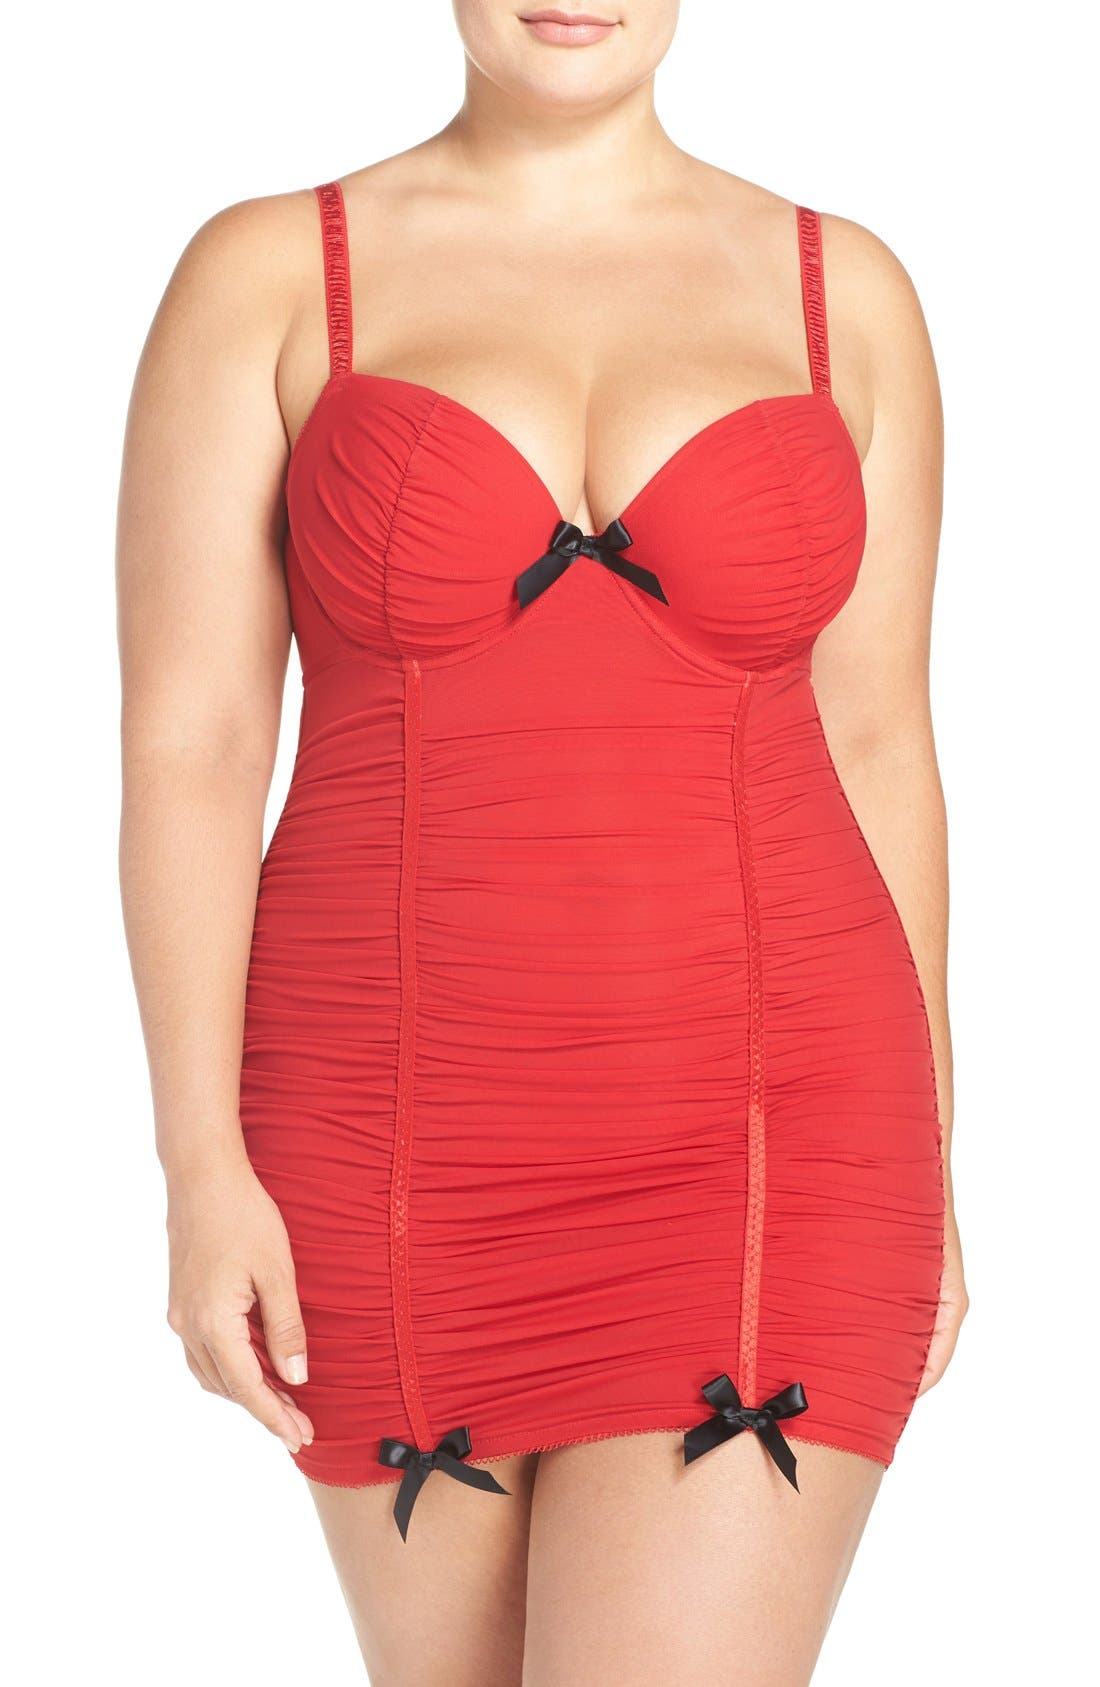 Alternate Image 1 Selected - Black Bow 'Show Off' Ruched Underwire Chemise (Plus Size)